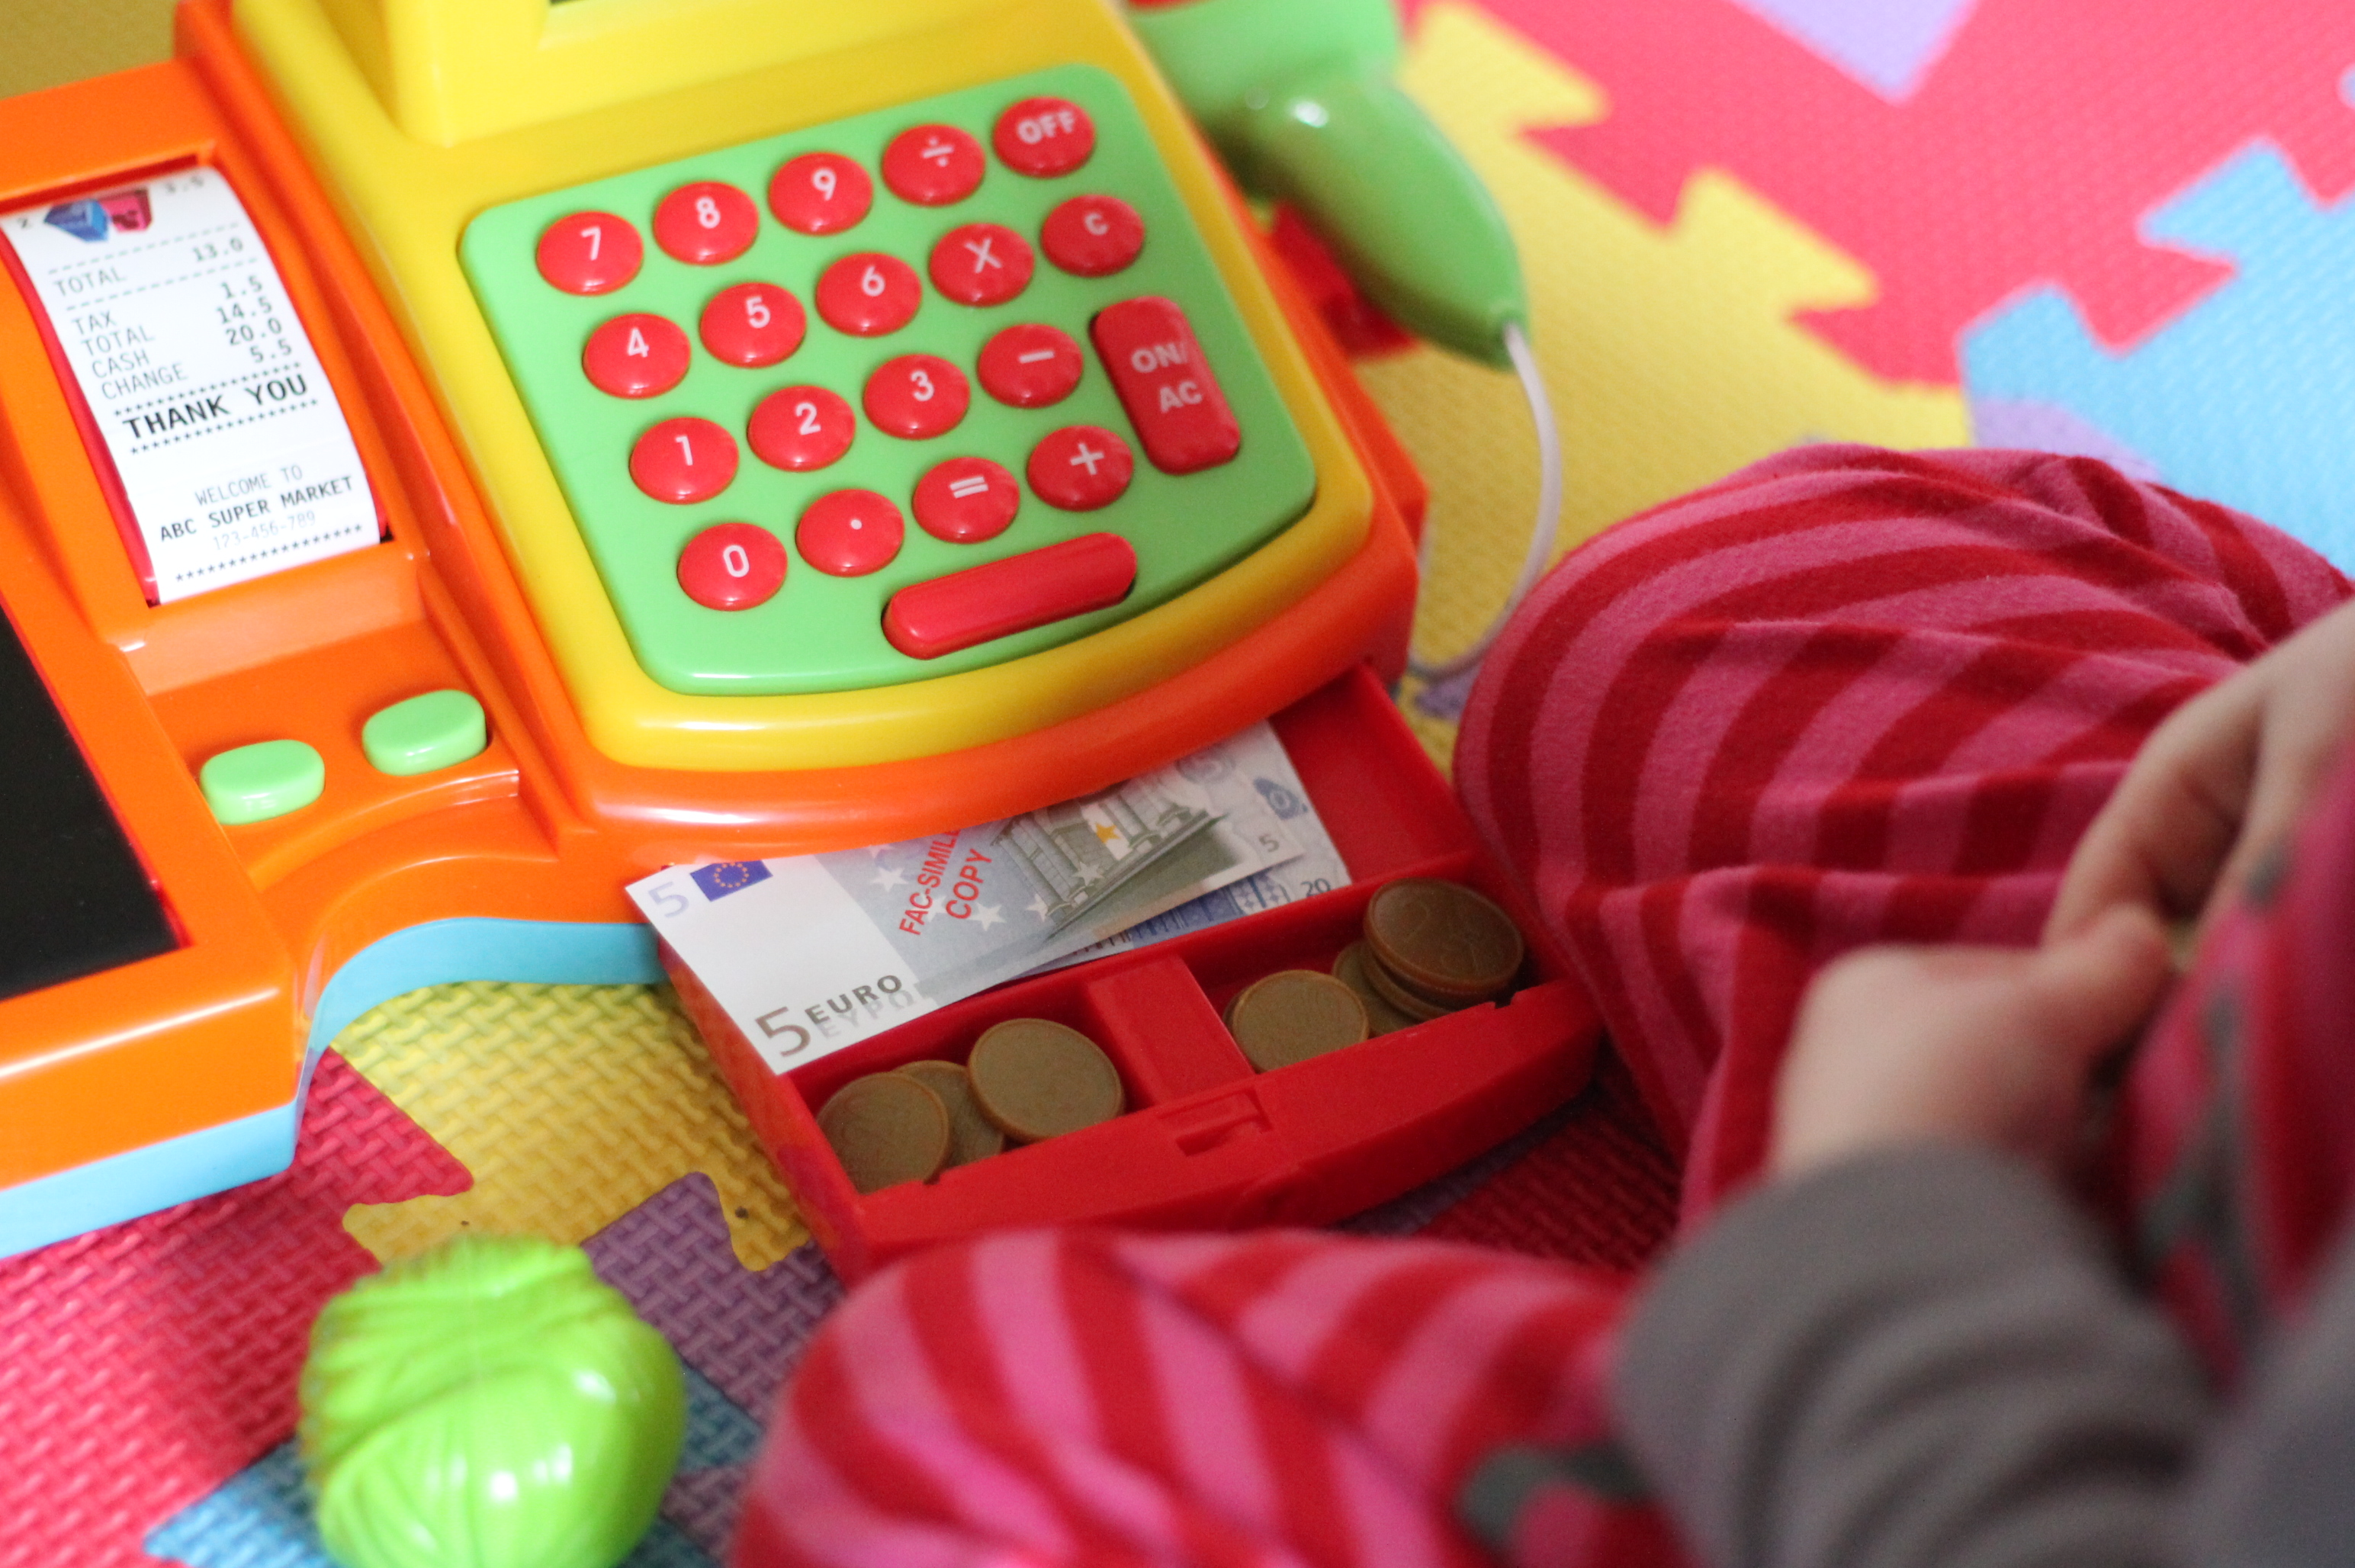 Little tikes cash register - The Little Tikes Cash Register Is Lp S New Favourite Toy And She Is Now Enjoying Playing Shops Rather Than Kitchens I M Glad That Once Again I Have Given